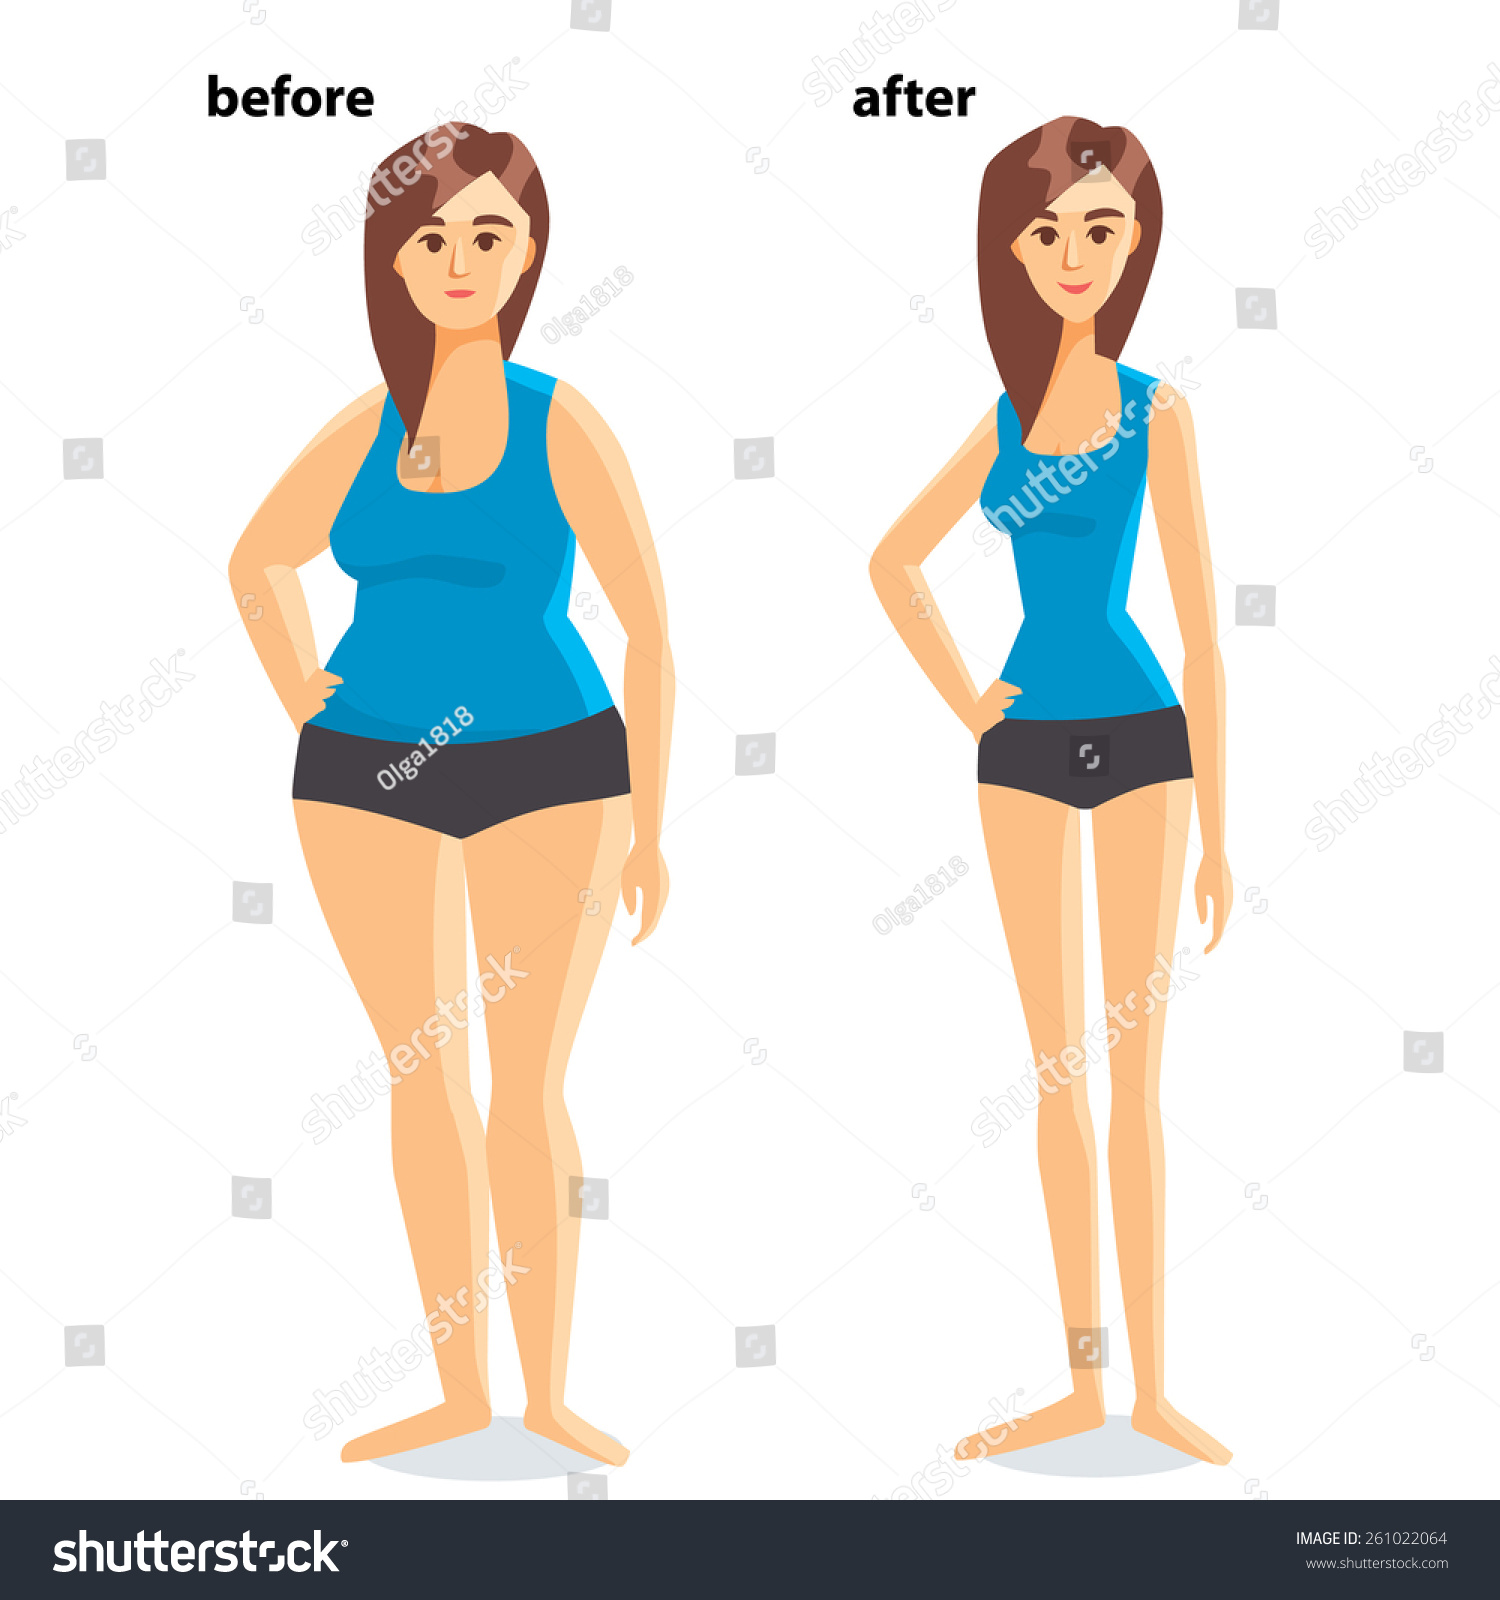 Body Shape Before After Weight Loss Stock Vector Royalty Free 261022064